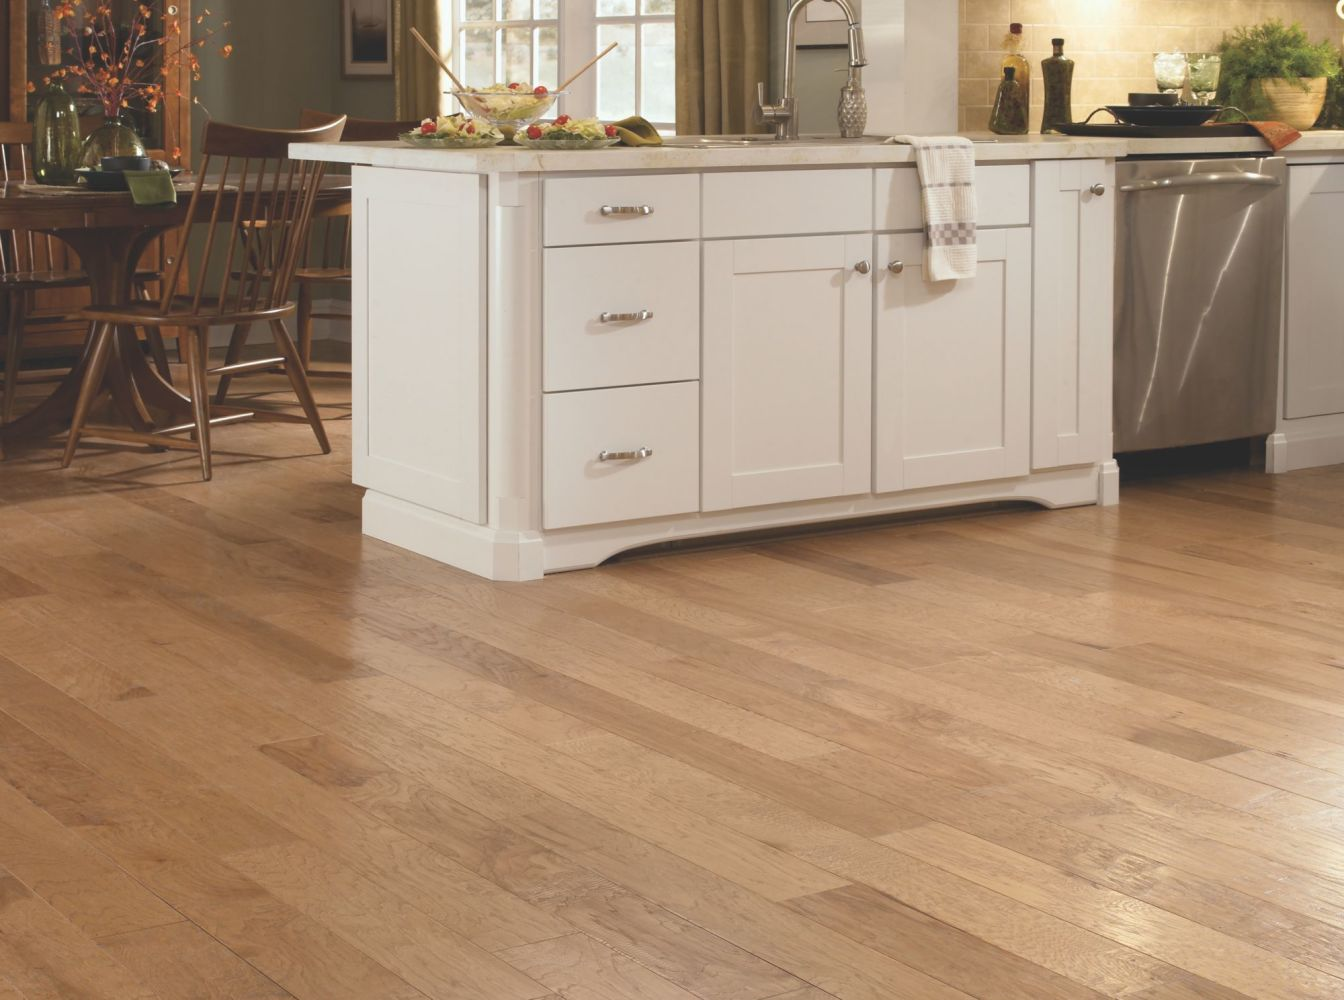 Shaw Floors Arkansas Flooring Connection Lawrence 5 Prairie Dust 00144_AK000